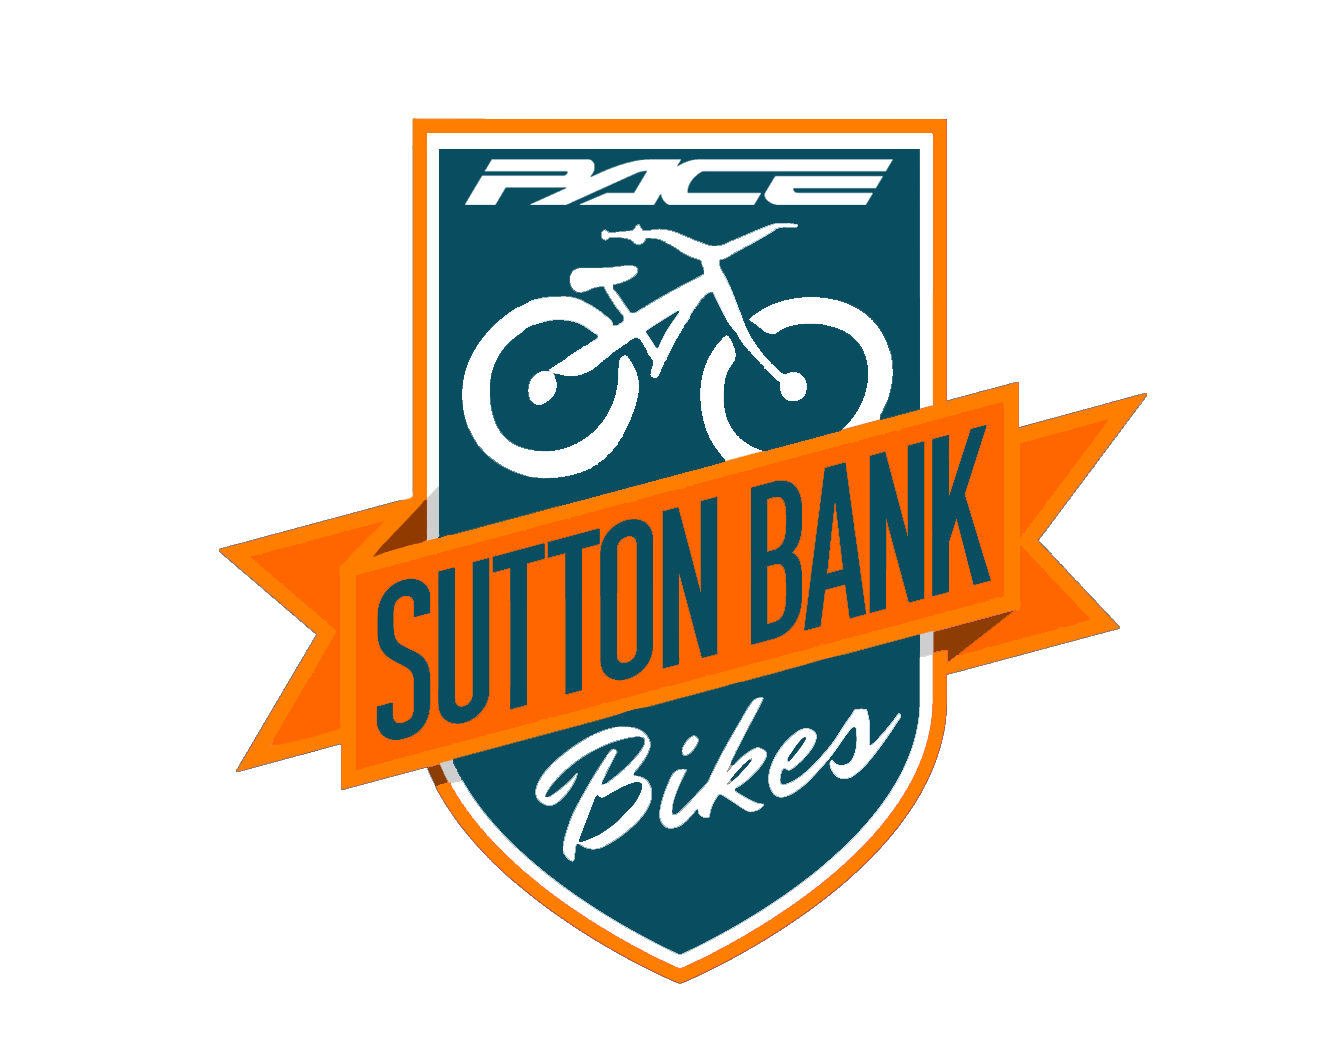 Sutton Bank Bikes - Bike Hire - Trails - Sales